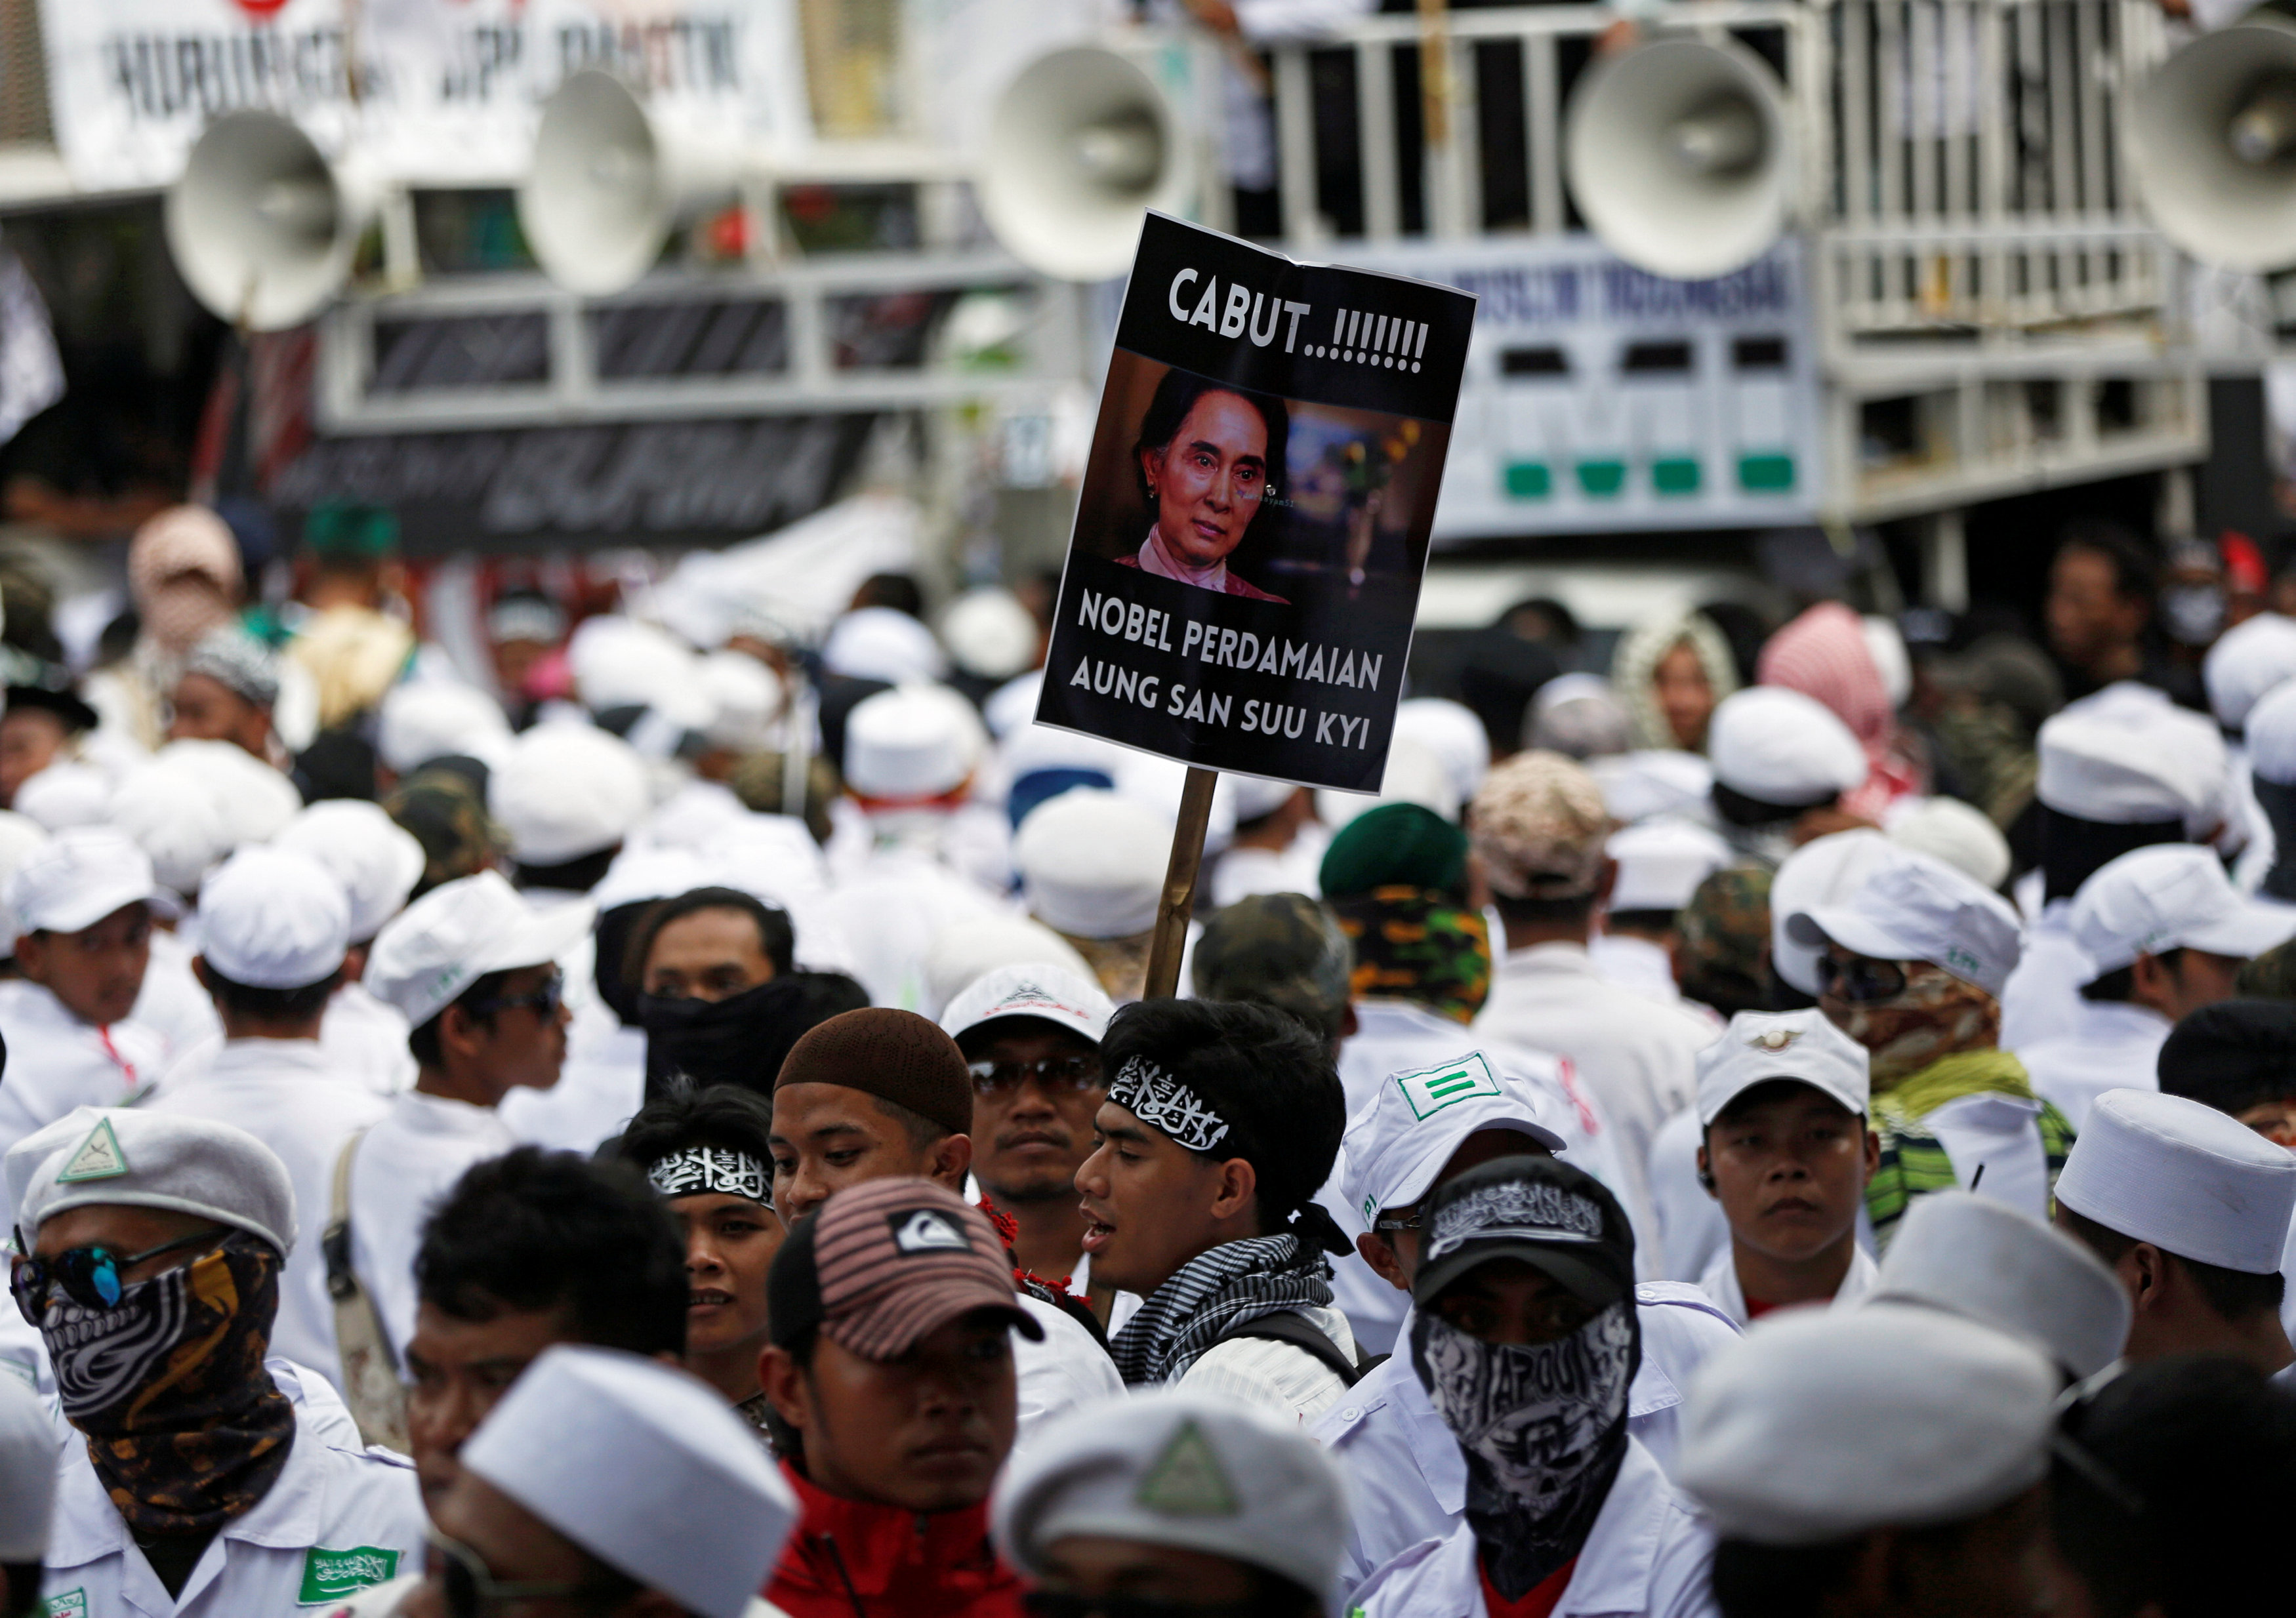 Thousands of Indonesians rally in anti-Myanmar protest in Jakarta